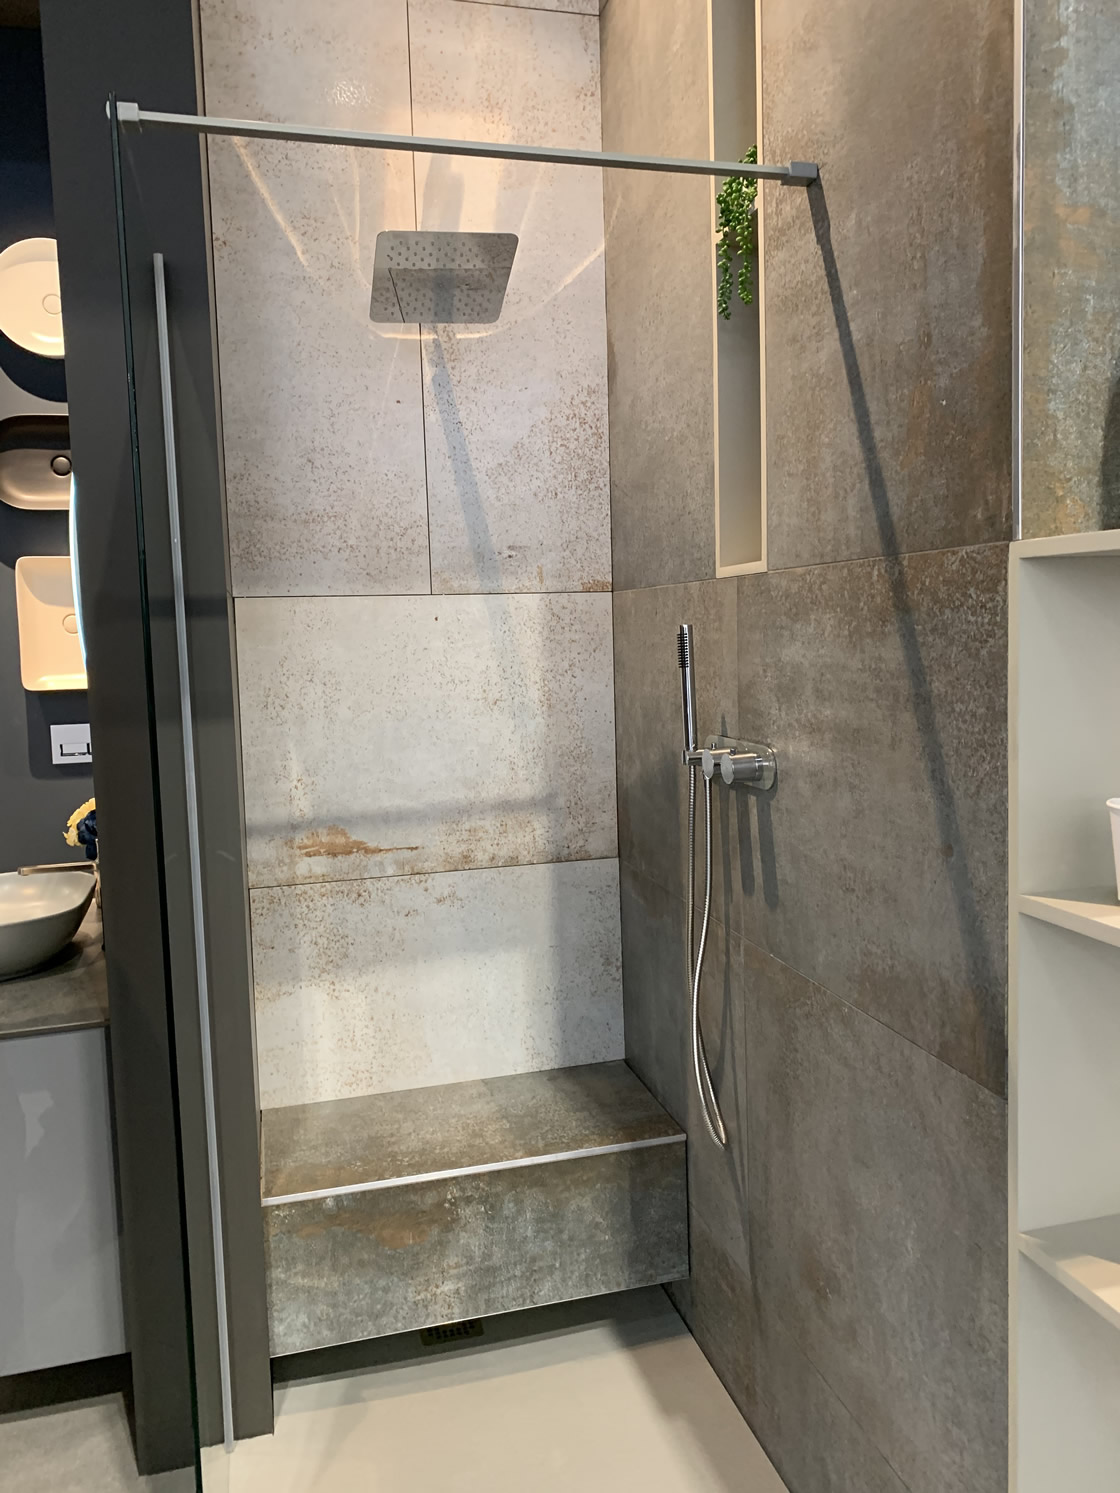 Walk-in shower with seat display